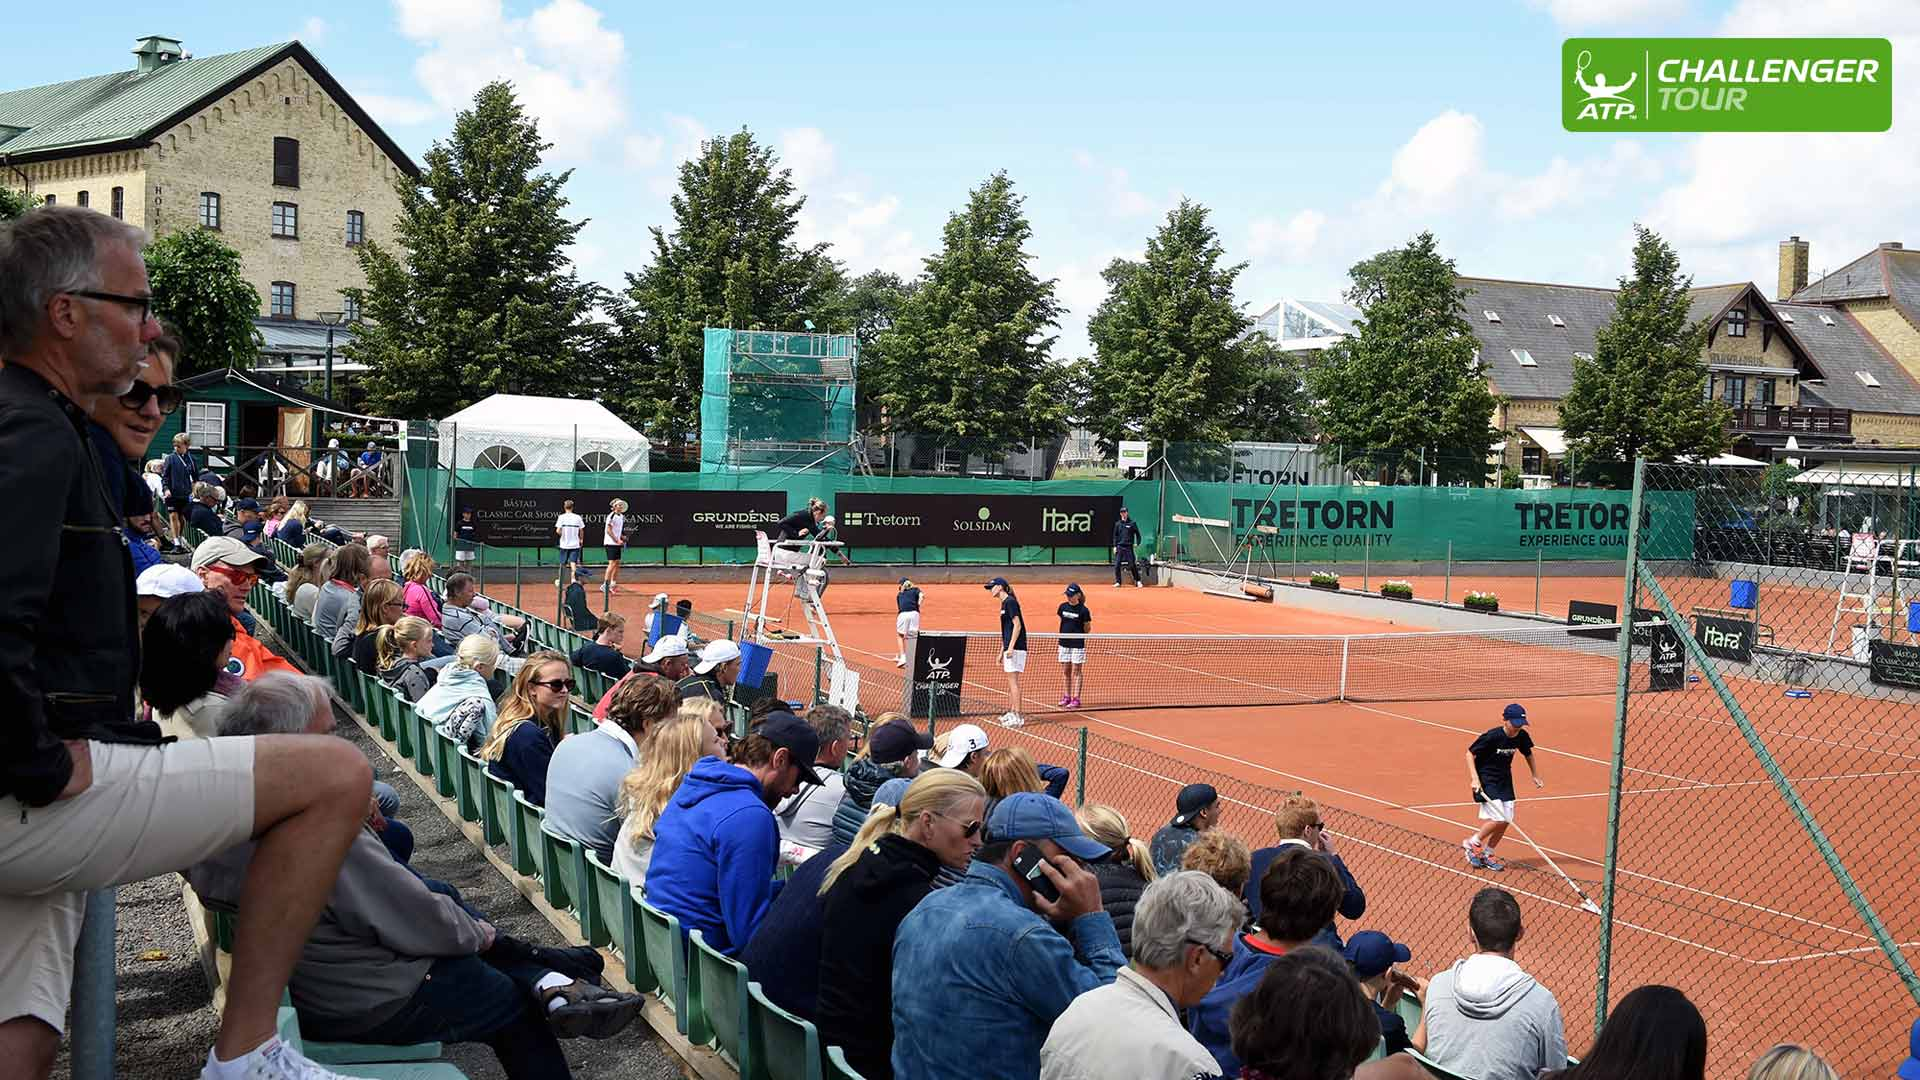 Packed crowds are enjoying the inaugural ATP Challenger Tour event in Bastad.